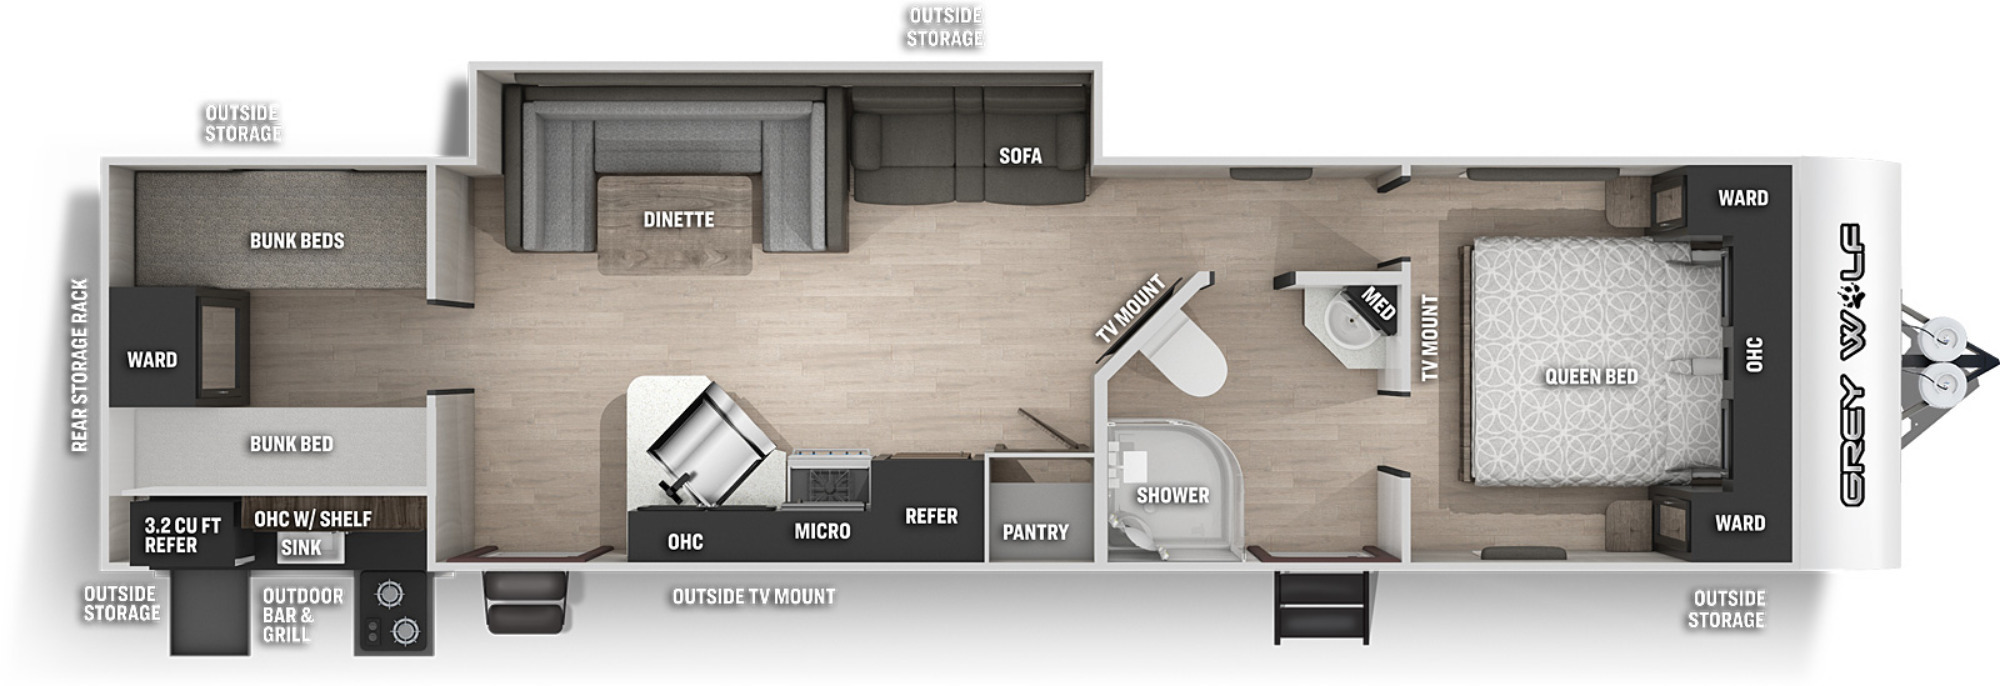 View Floor Plan for 2022 FOREST RIVER GREY WOLF 29TE